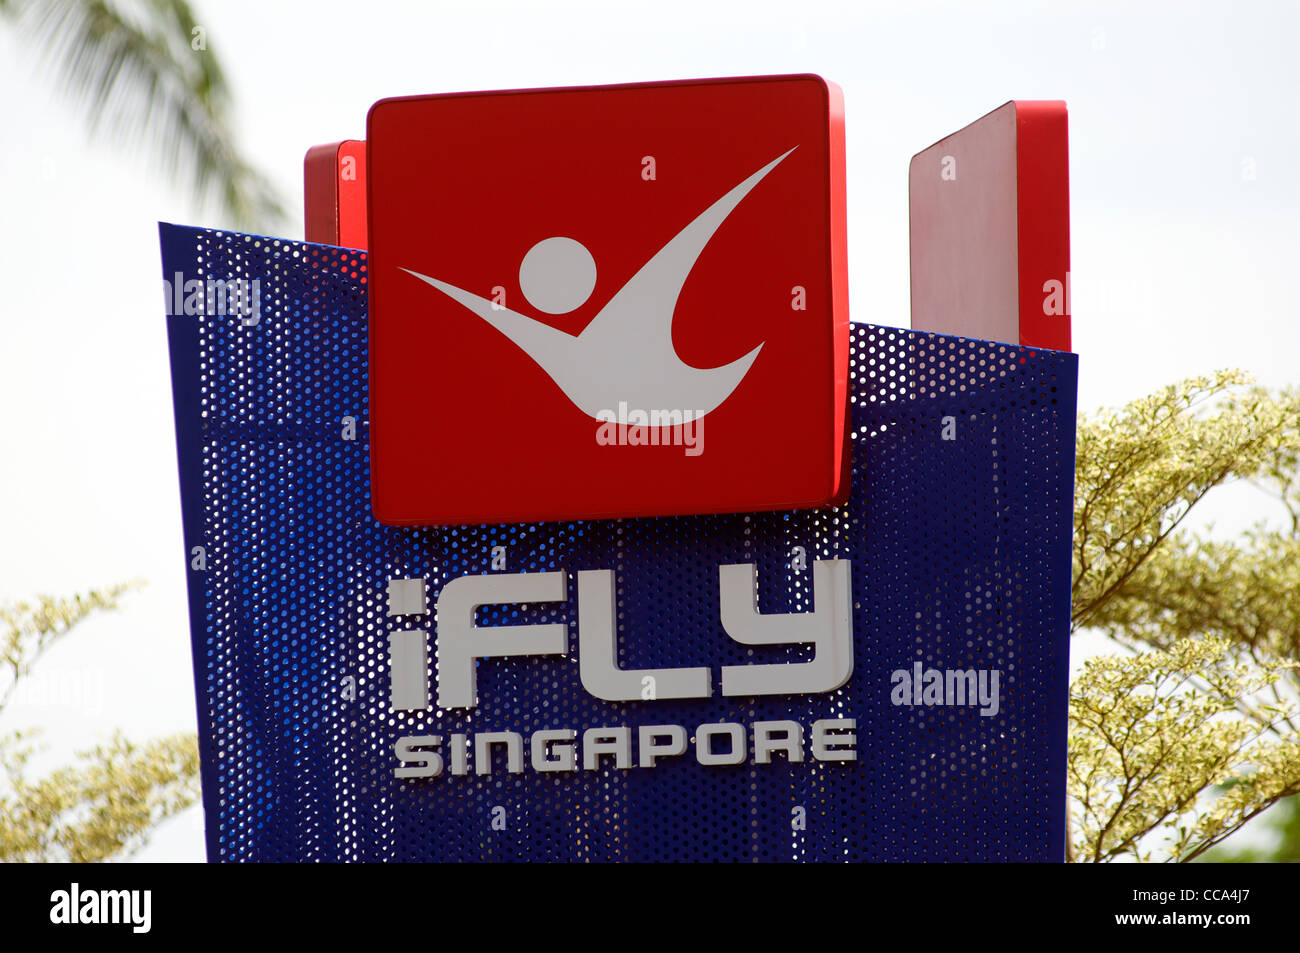 Ifly Stock Photos Images Alamy Singapore Adult I Fly He Worlds Largest Themed Wind Tunnel For Indoor Skydiving With Its